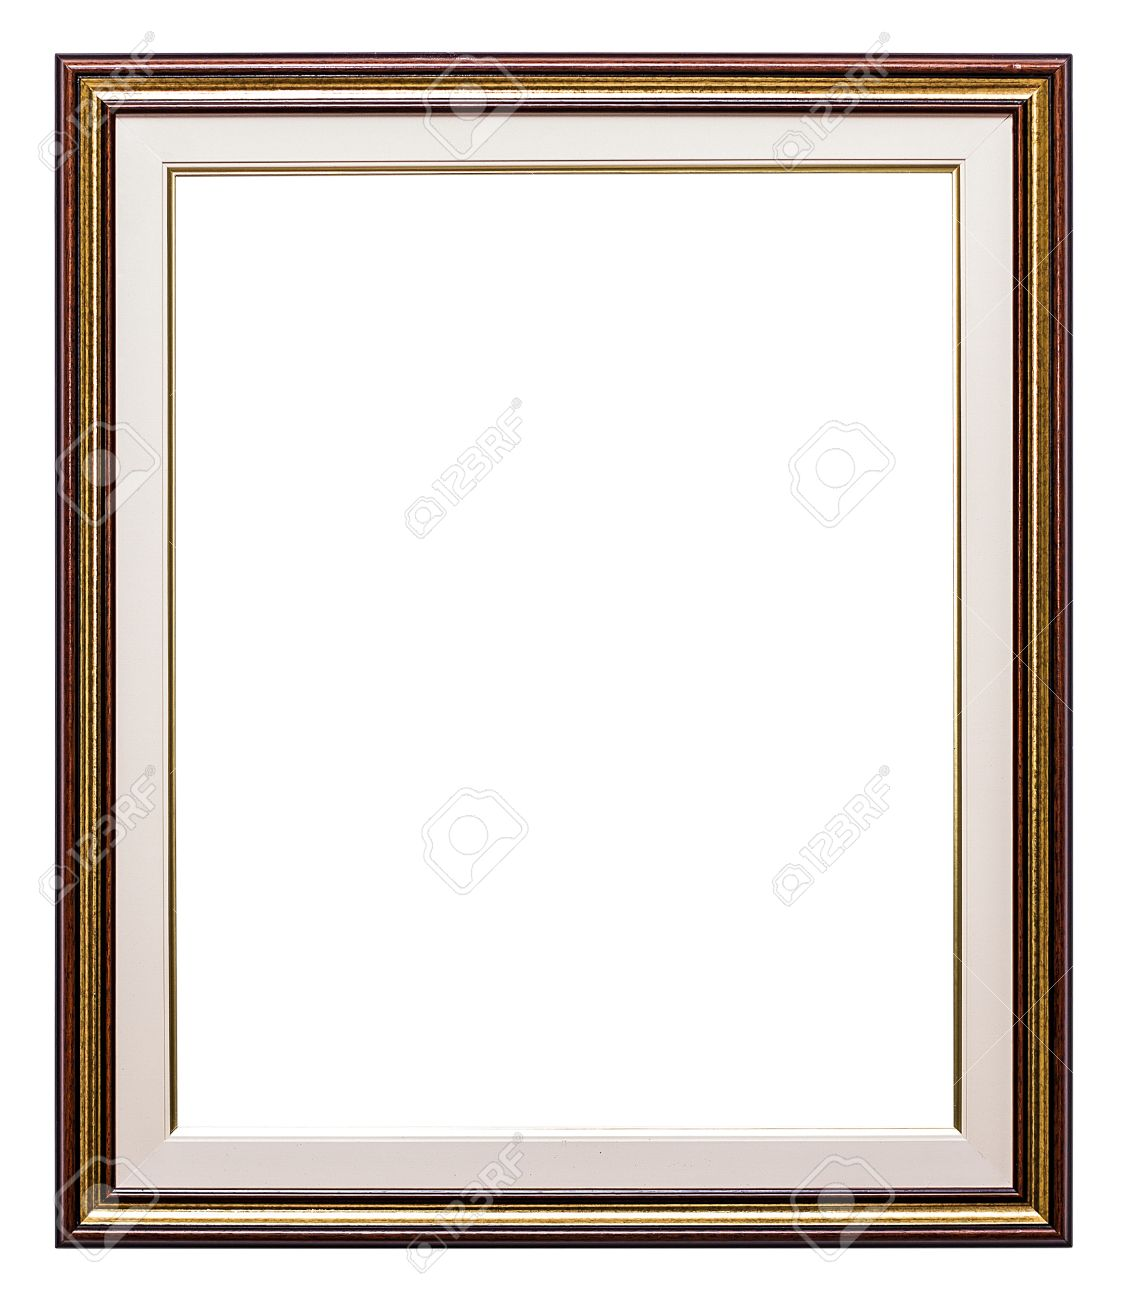 Old golden retro mirror frame no24 isolated on white background old golden retro mirror frame no24 isolated on white background stock photo jeuxipadfo Gallery